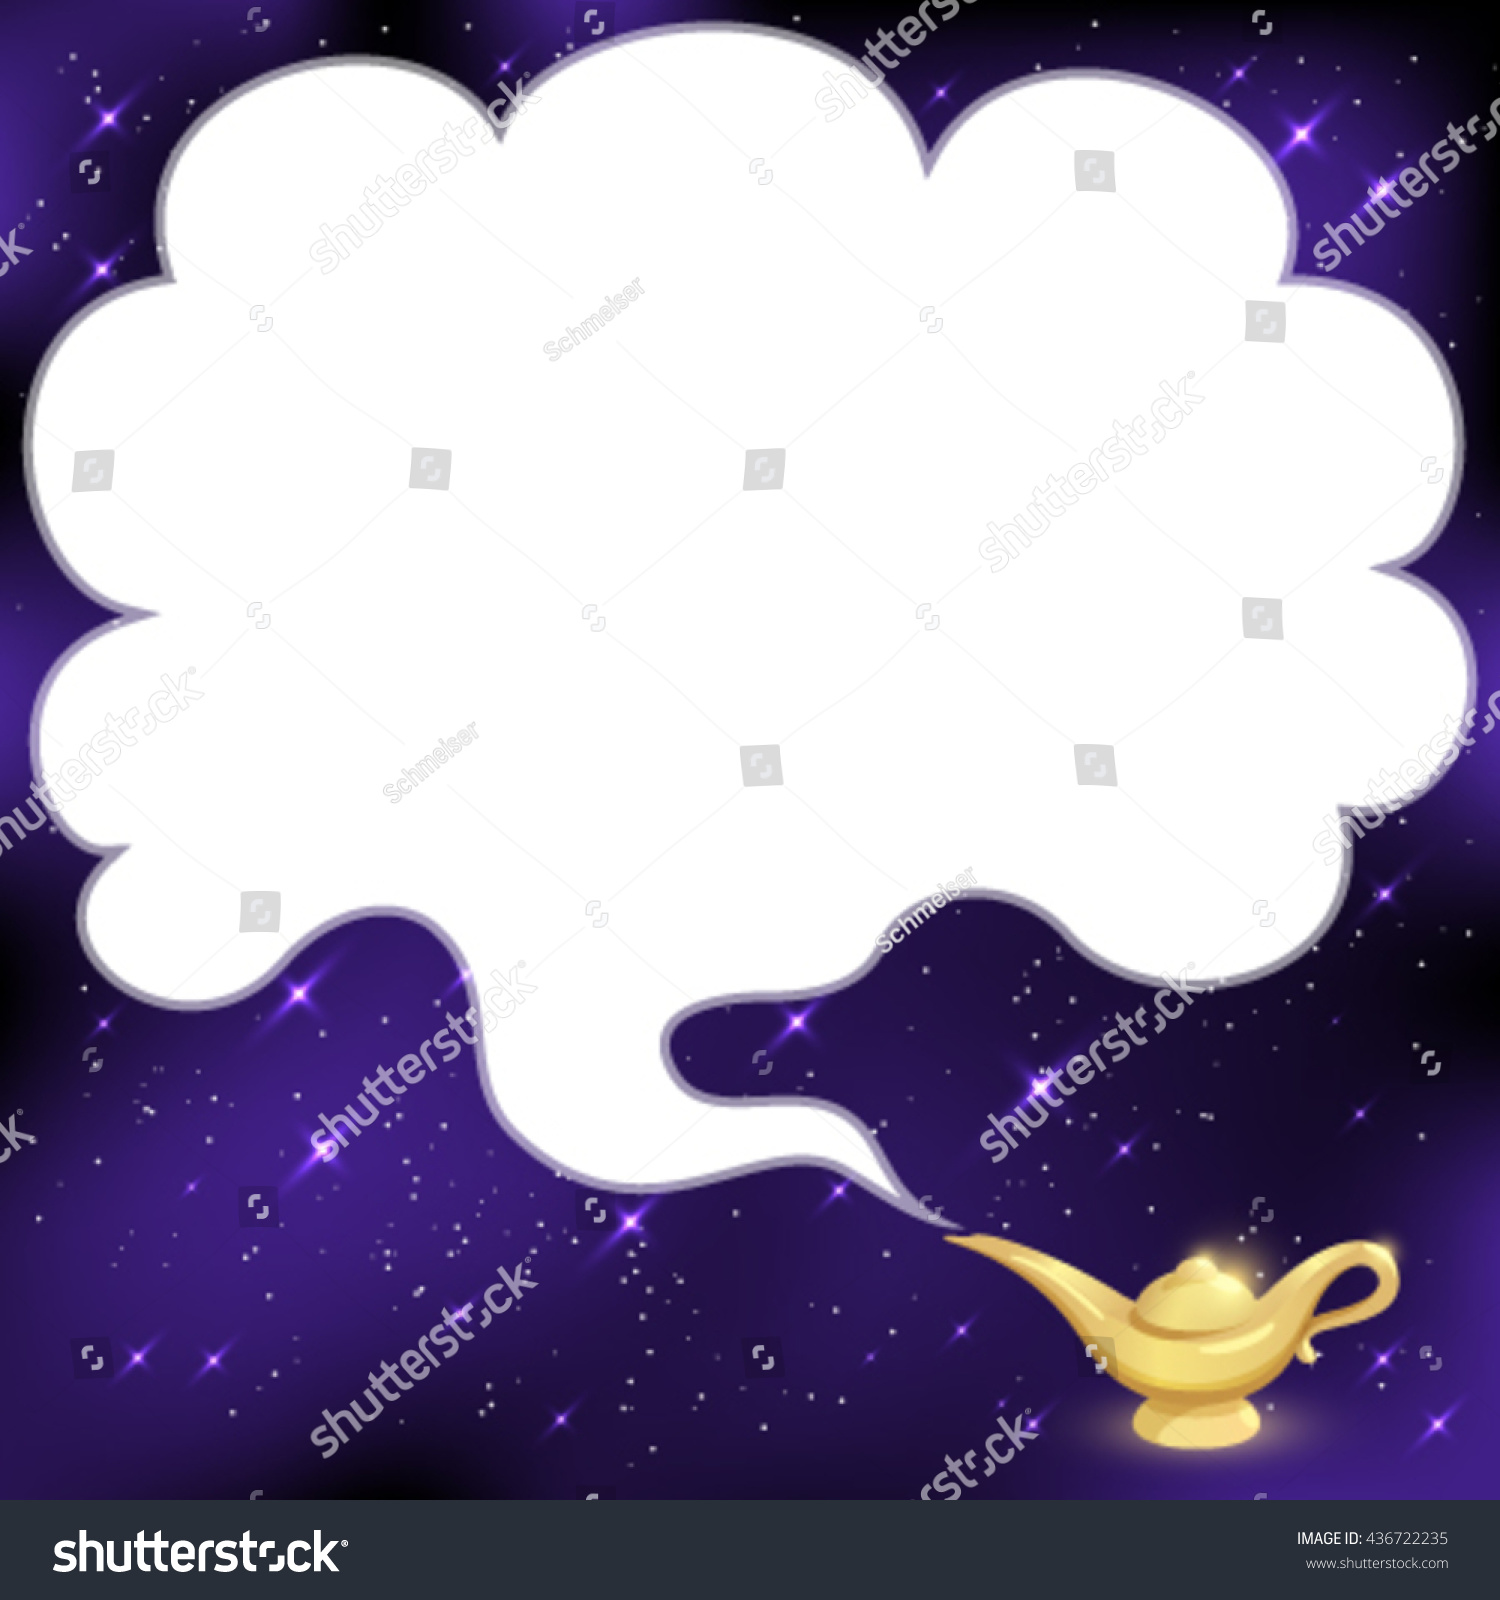 Magical Genie Lamp Smoke Space Text Stock Vector 436722235 ... for Magic Lamp With Smoke  45ifm